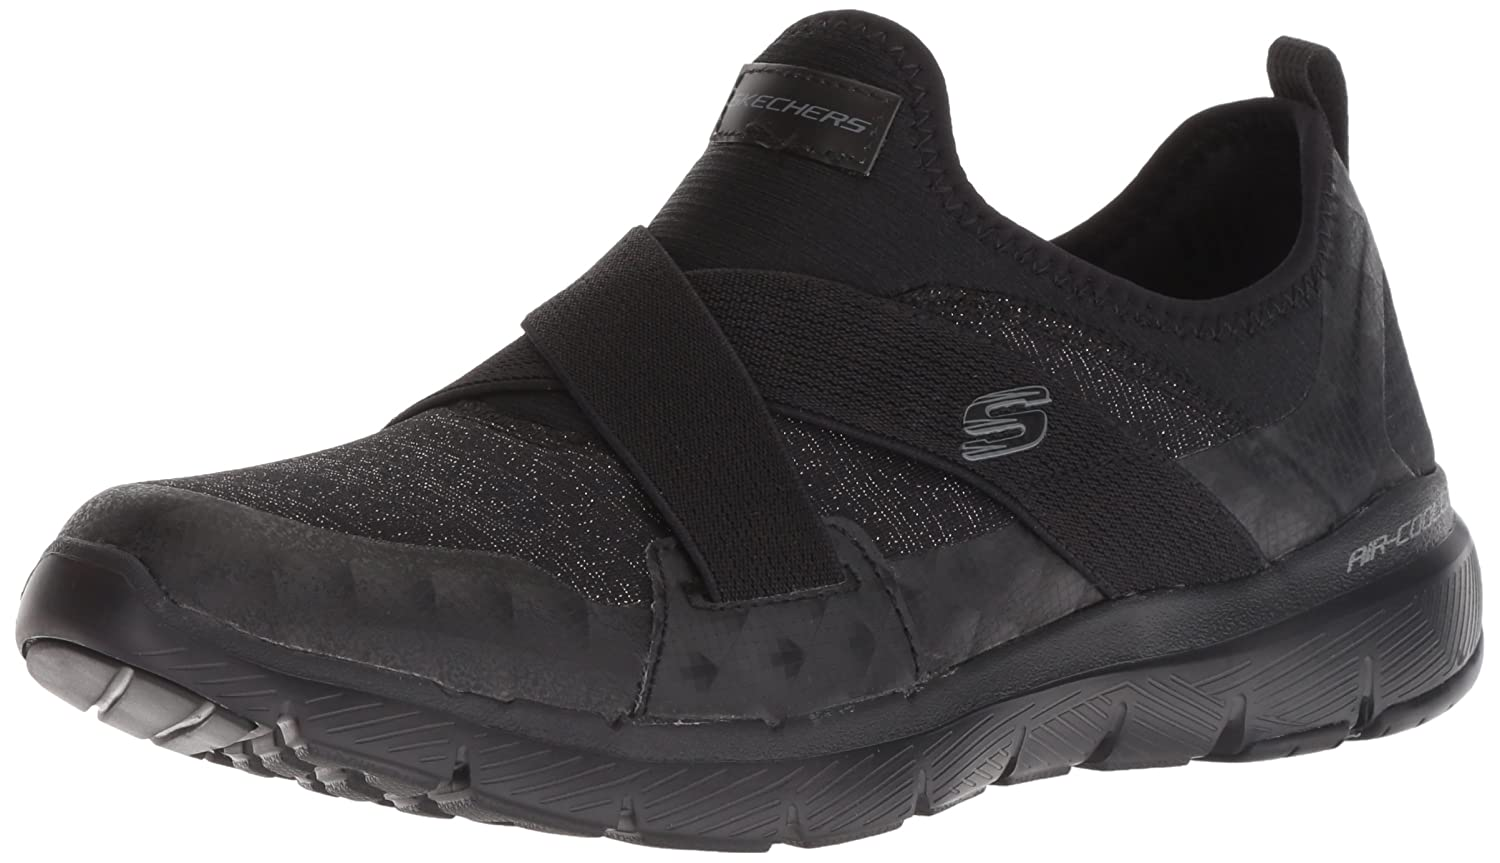 Skechers Women's Flex Appeal 3.0-Finest Hour Sneaker B079ZWFTSR 9.5 M US|Black/Black